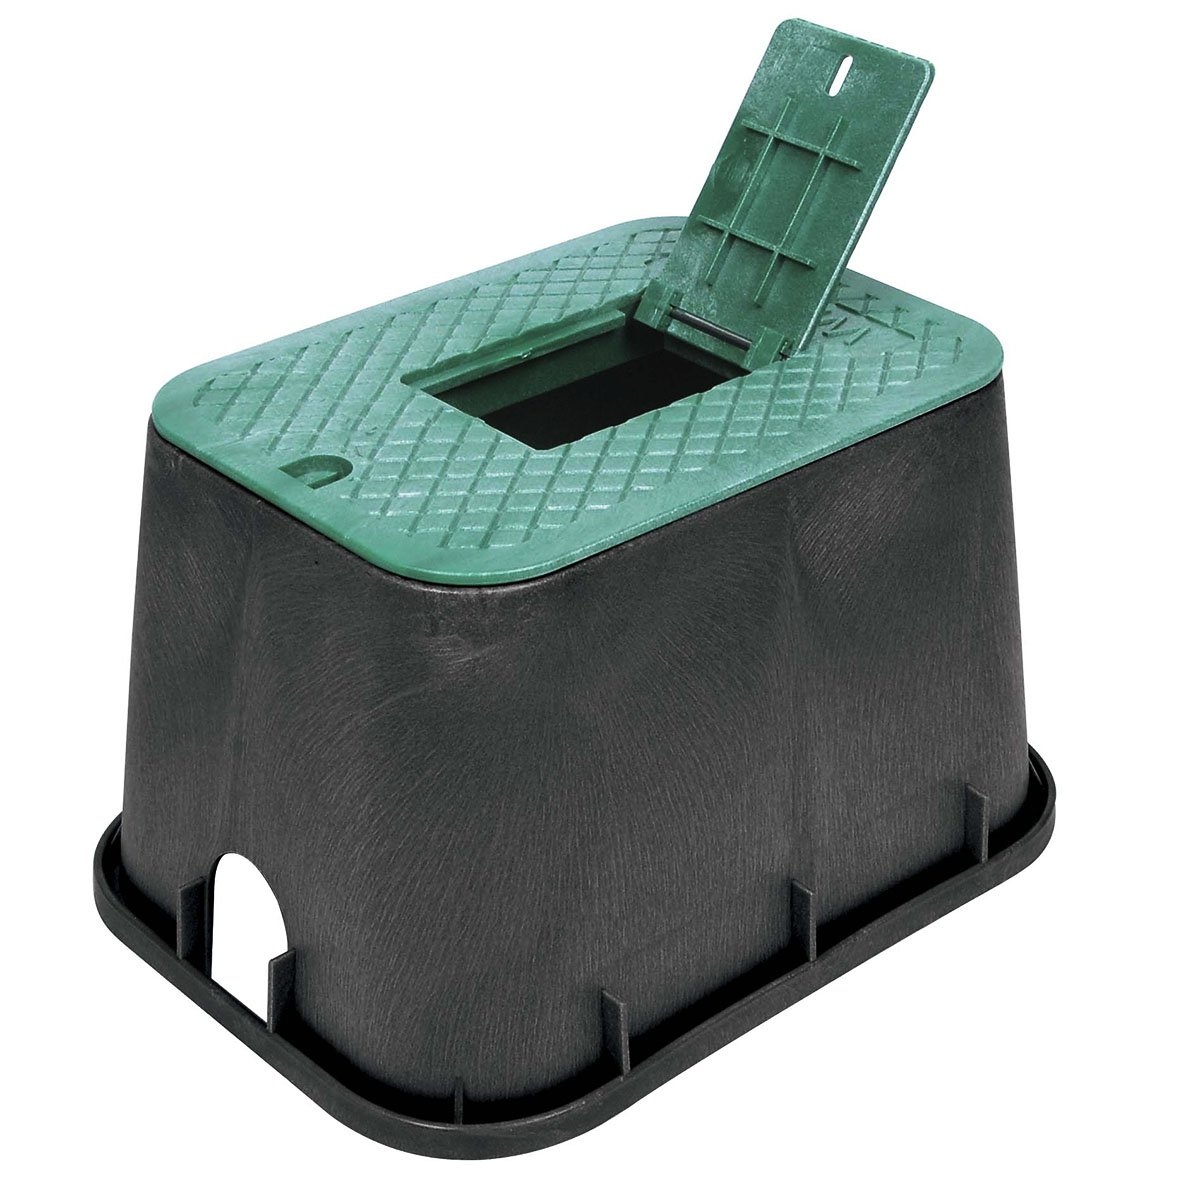 Storm Drain 12'' x 17'' Meter Box with Lid